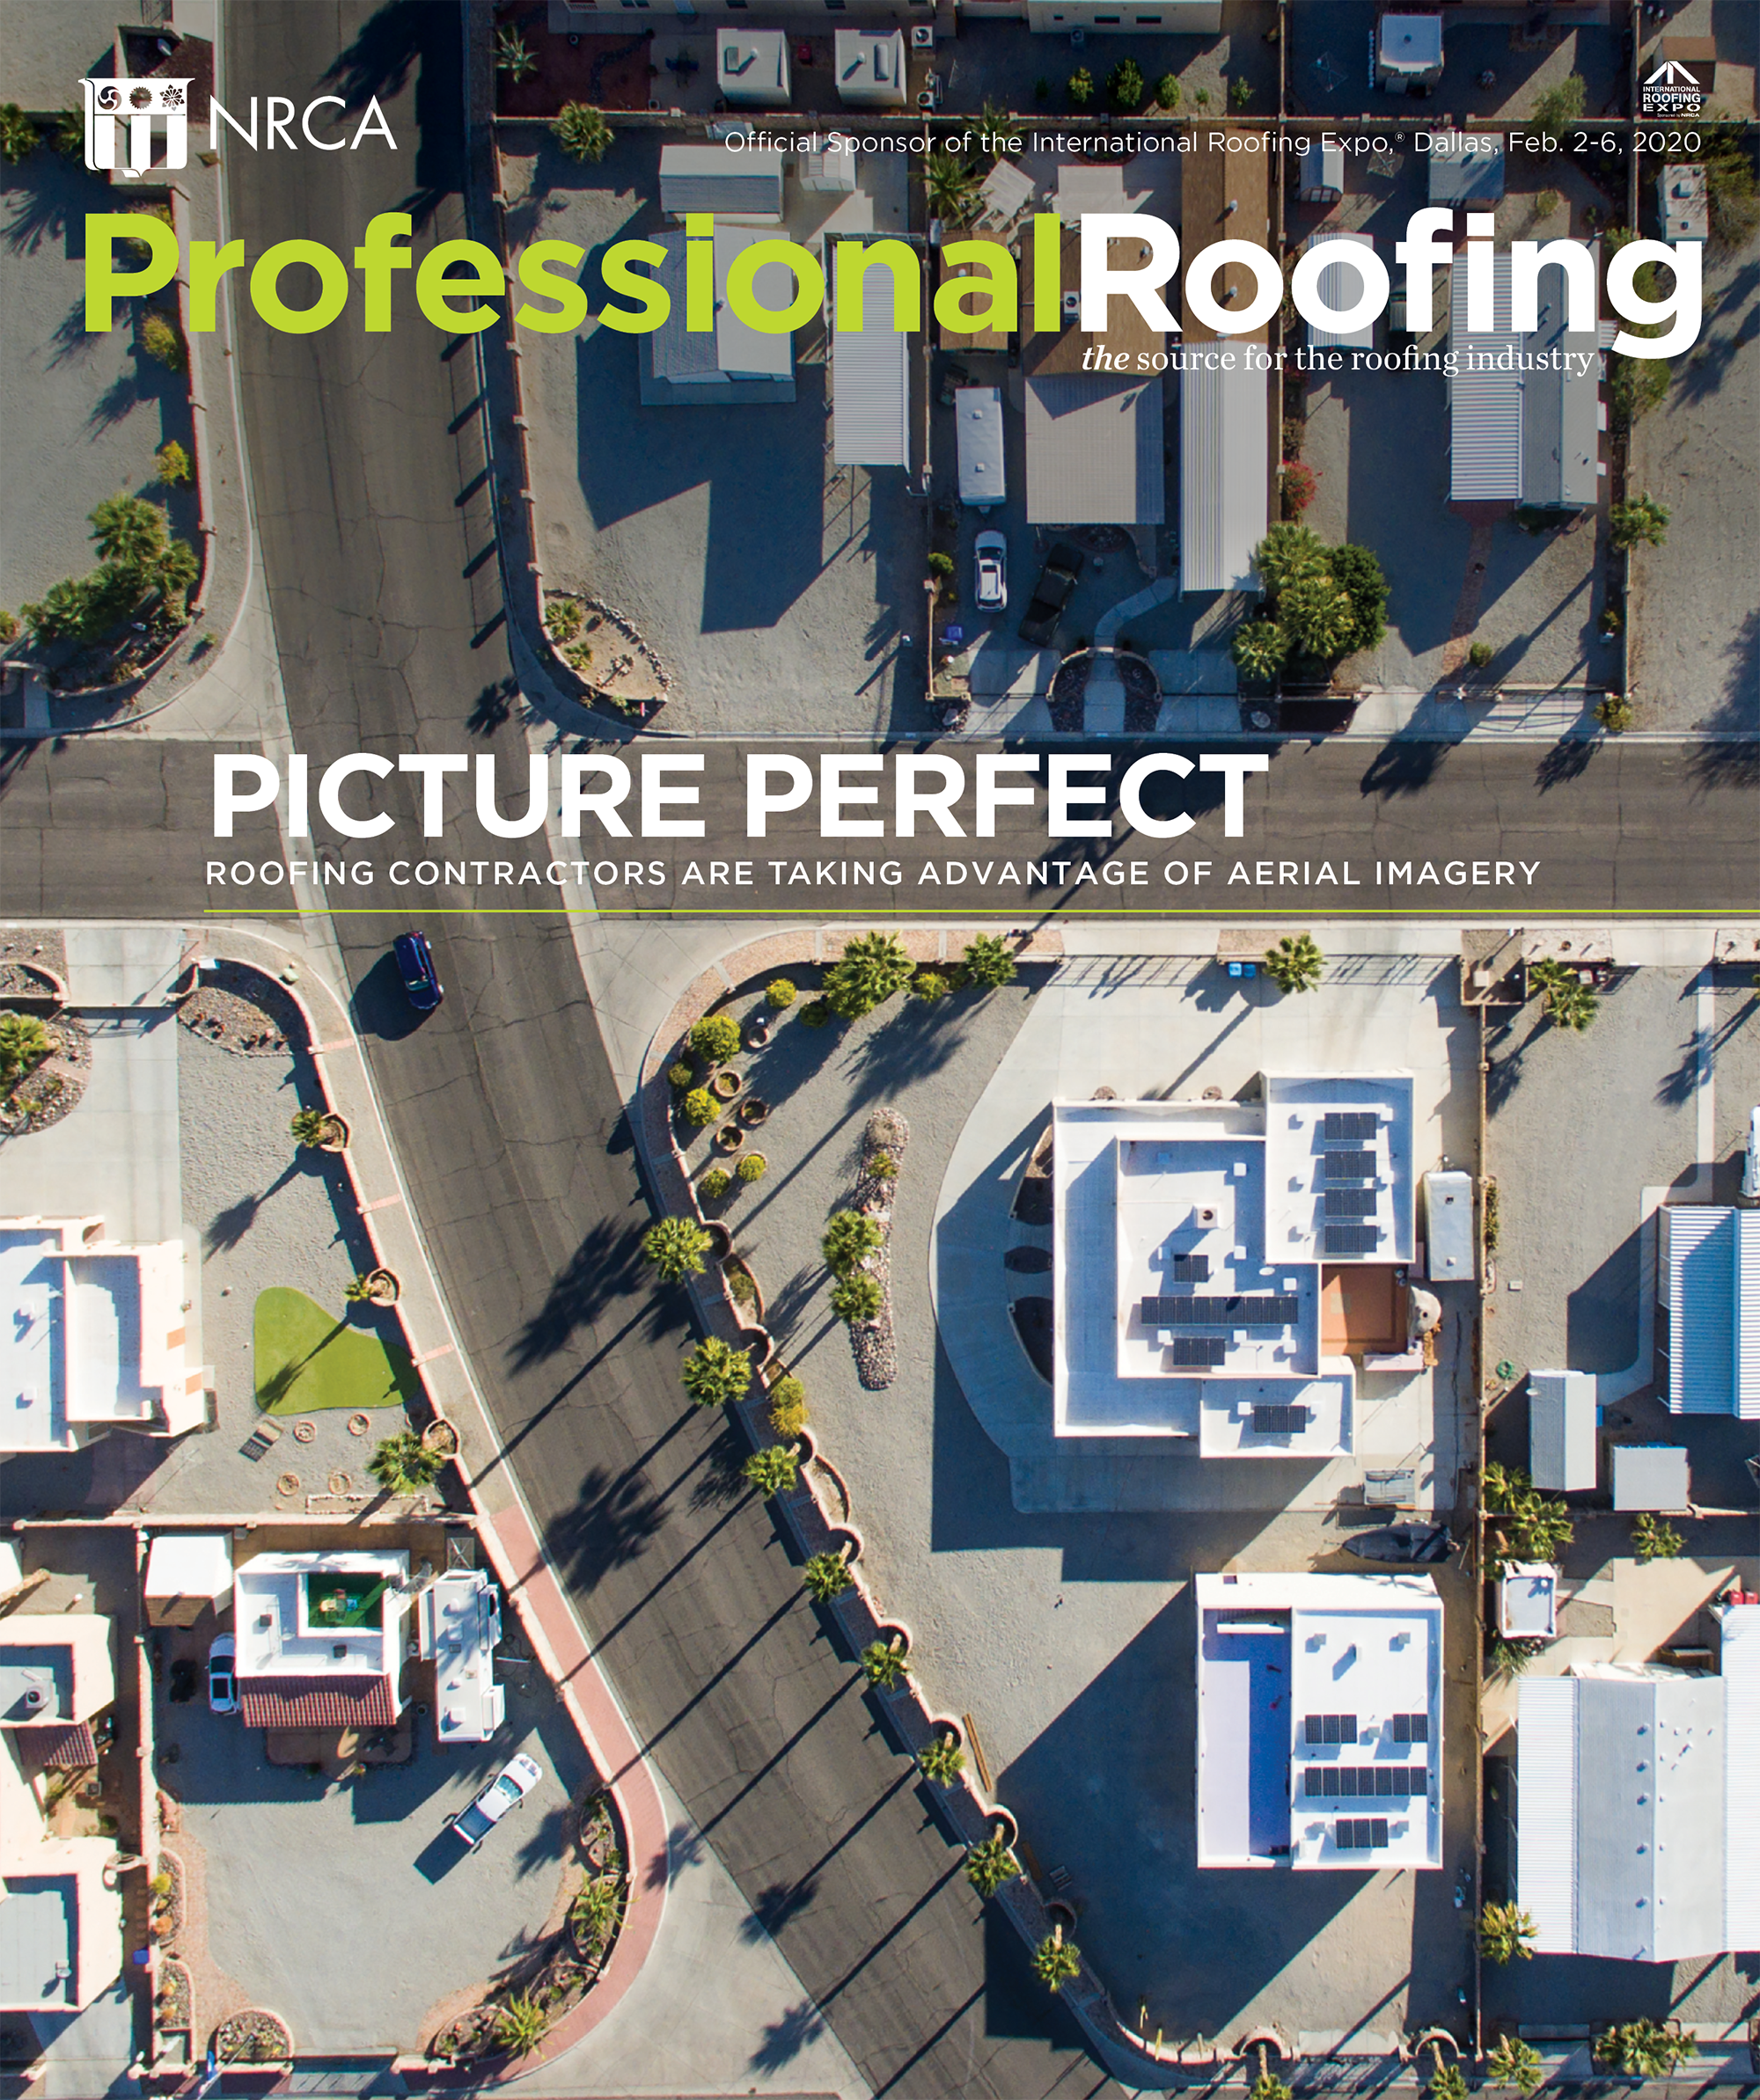 Professional Roofing Magazine 12/1/2019